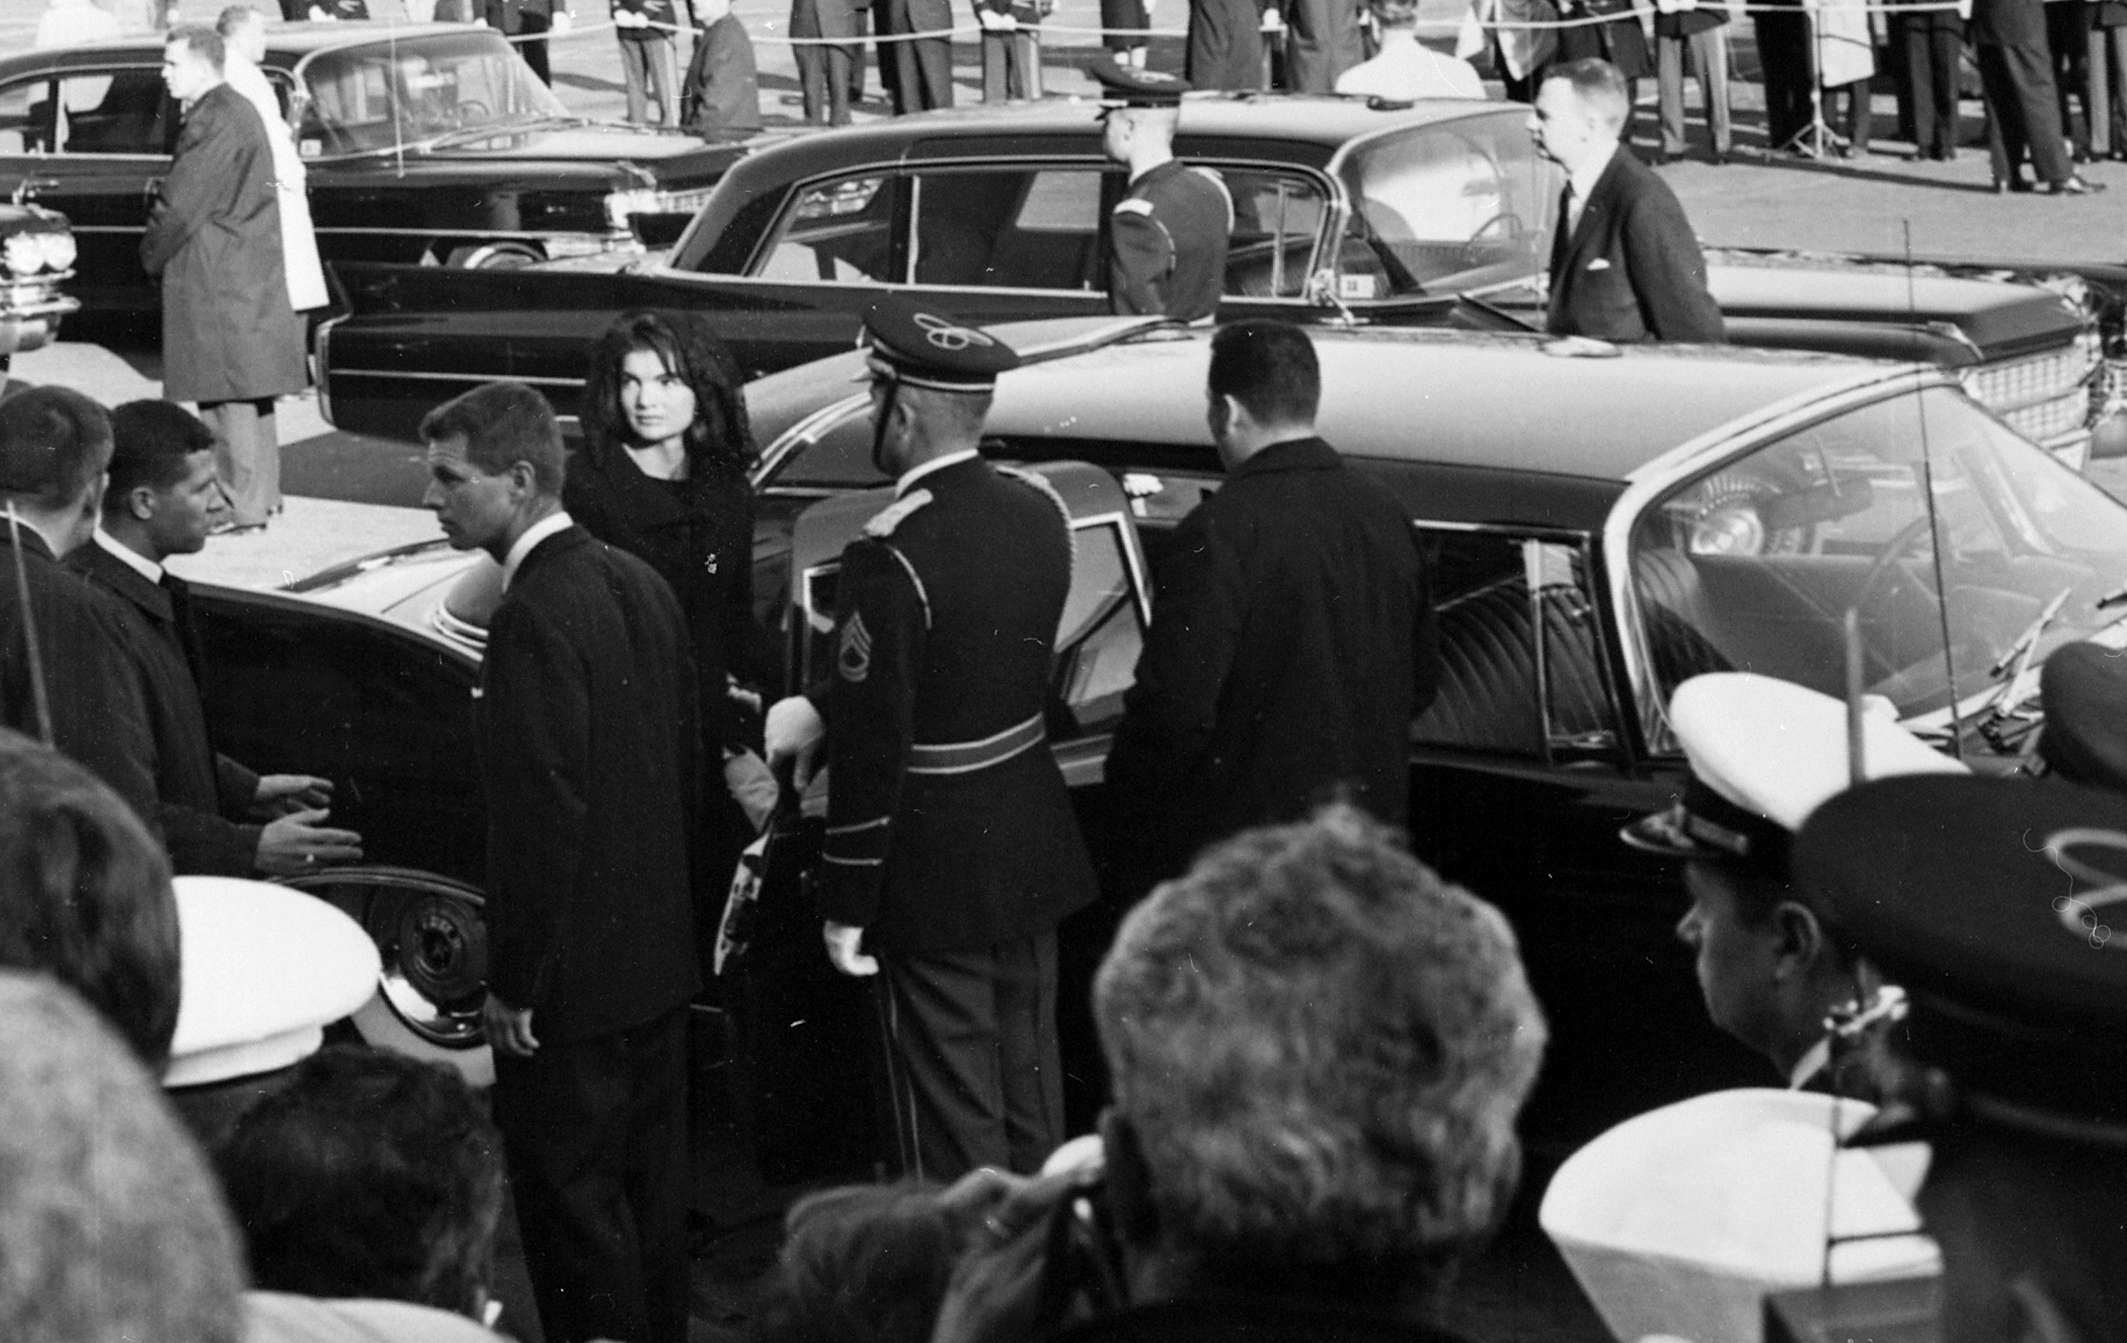 Jackie Kennedy Funeral | File:JFK funeral - Jacqueline & Robert Kennedy entering limousine.png ...